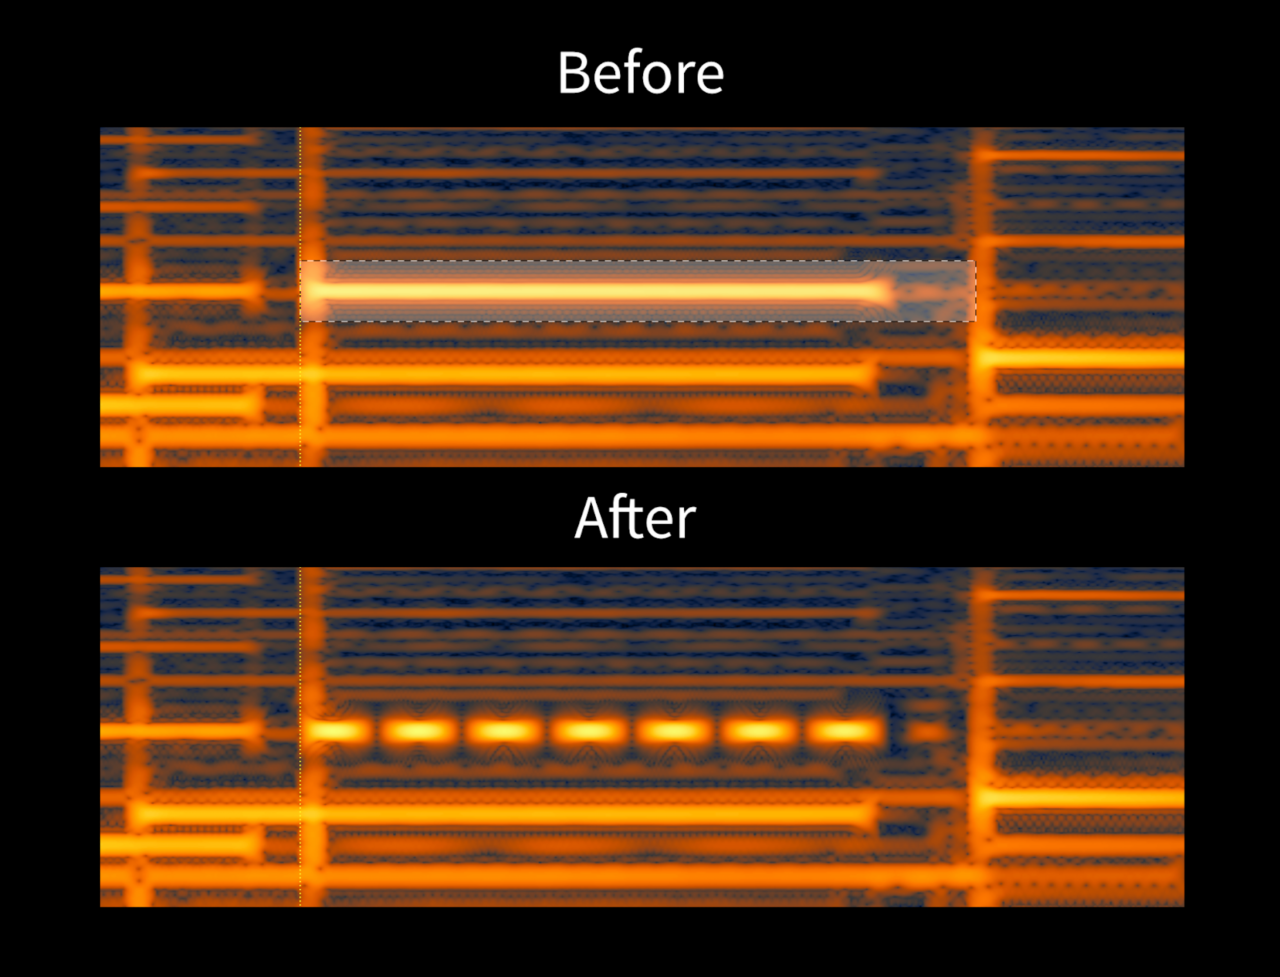 A guitar note with and without tremolo in the RX 7 spectrogram